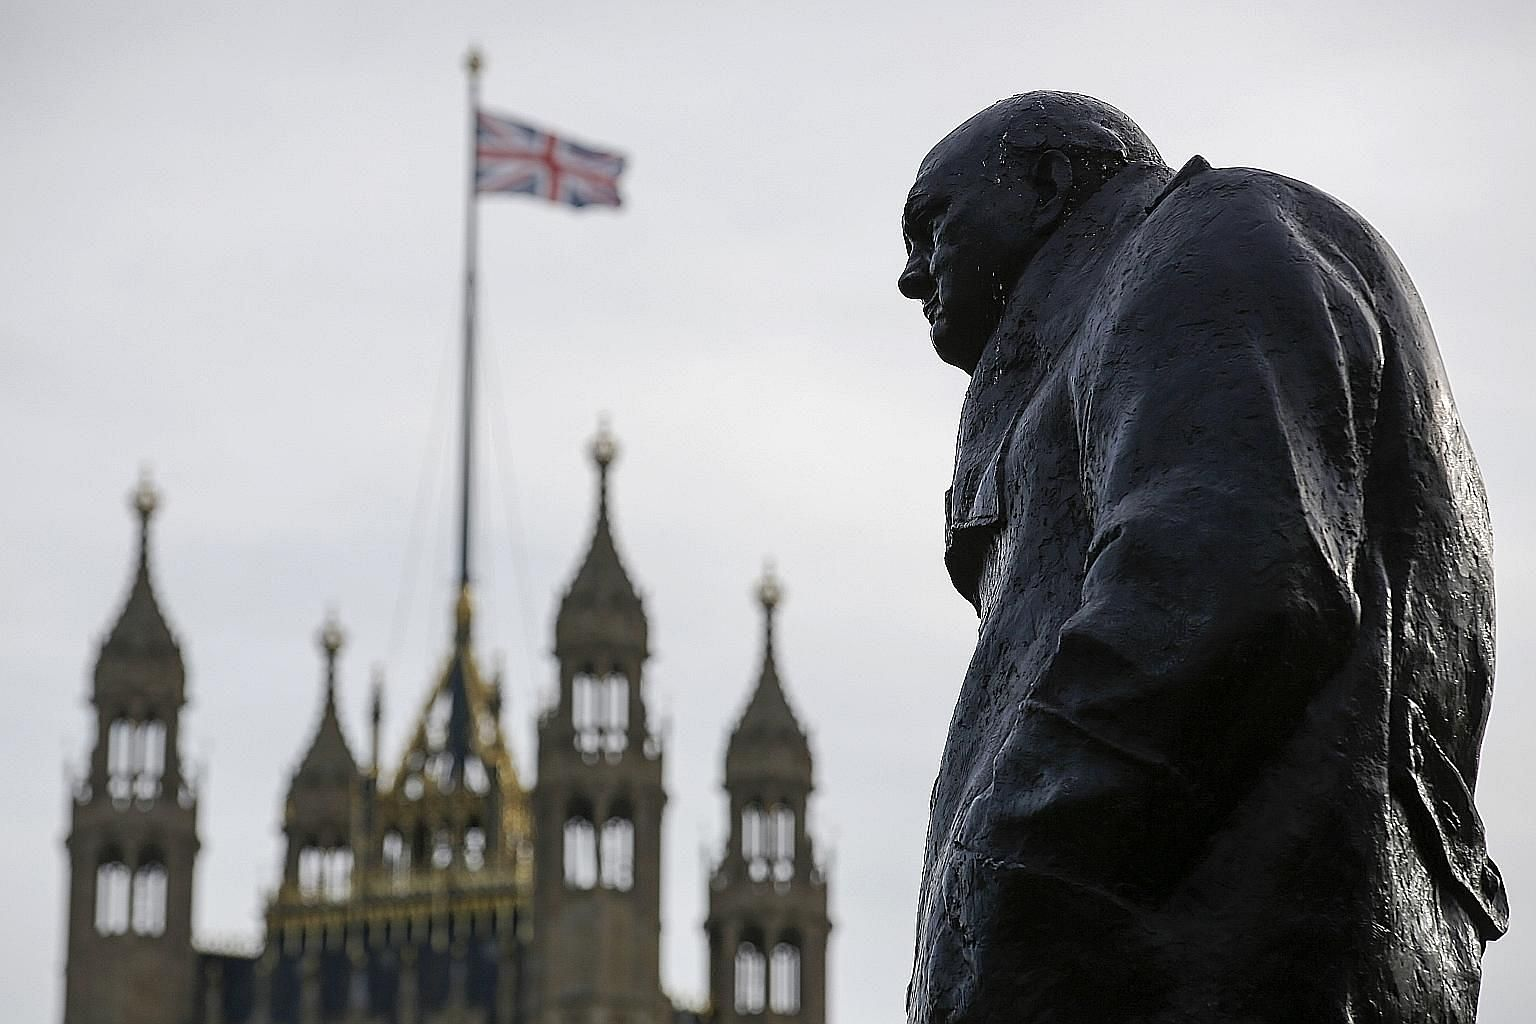 A statue of former British prime minister Winston Churchill near the Houses of Parliament in London. The writer says that under a hung Parliament, the United Kingdom could negotiate a new deal on Brexit and then put it to the people for confirmation.